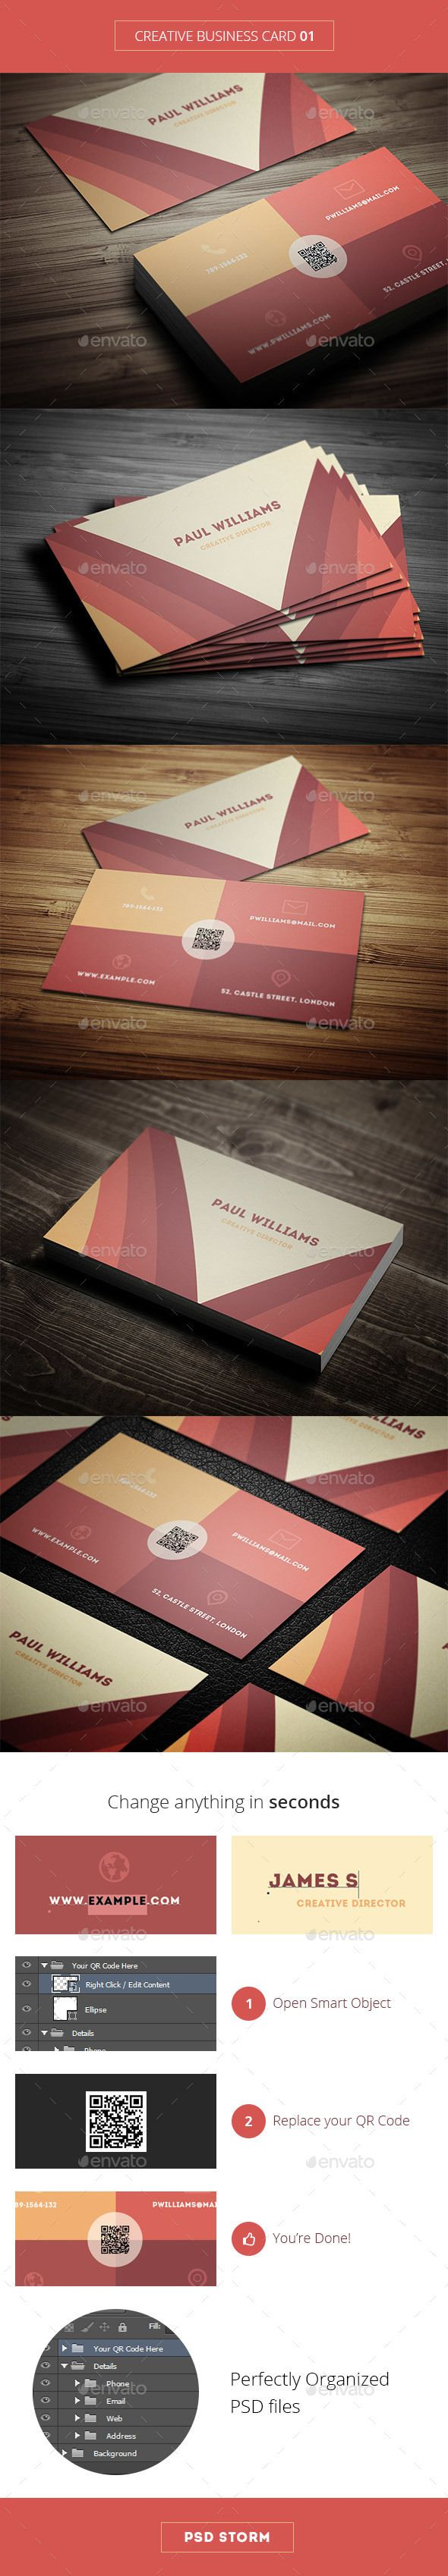 62 best images about Business card ideas on Pinterest